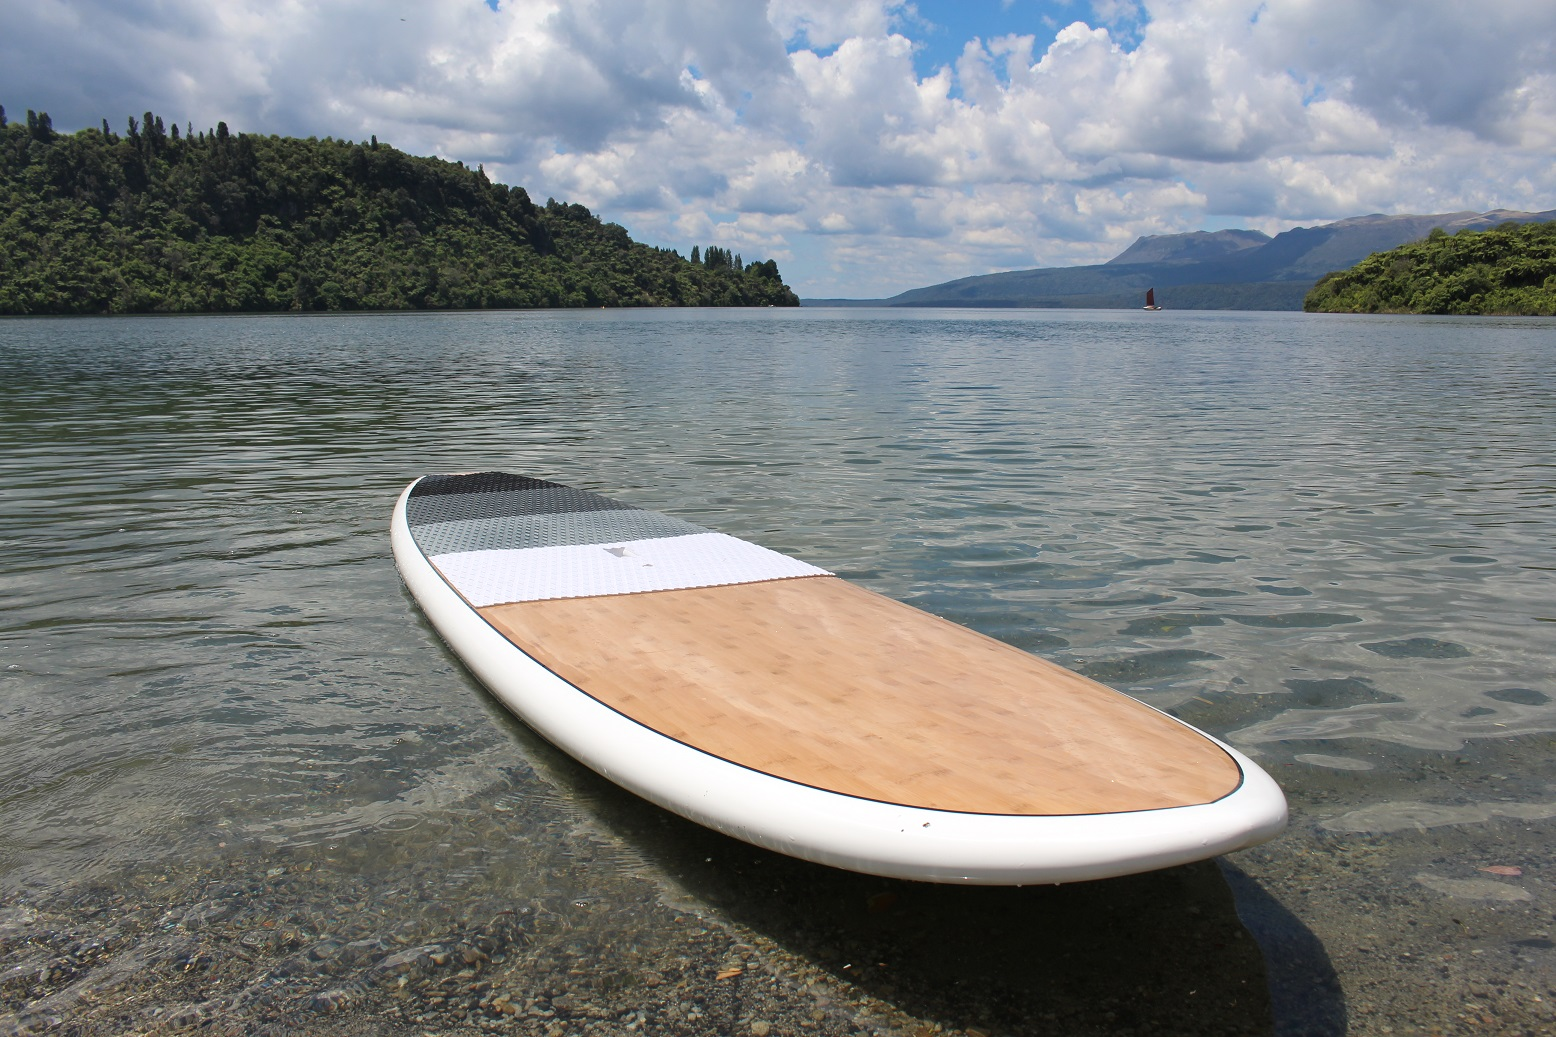 For a more satisfying paddle - we use high quality hard epoxy paddle boards